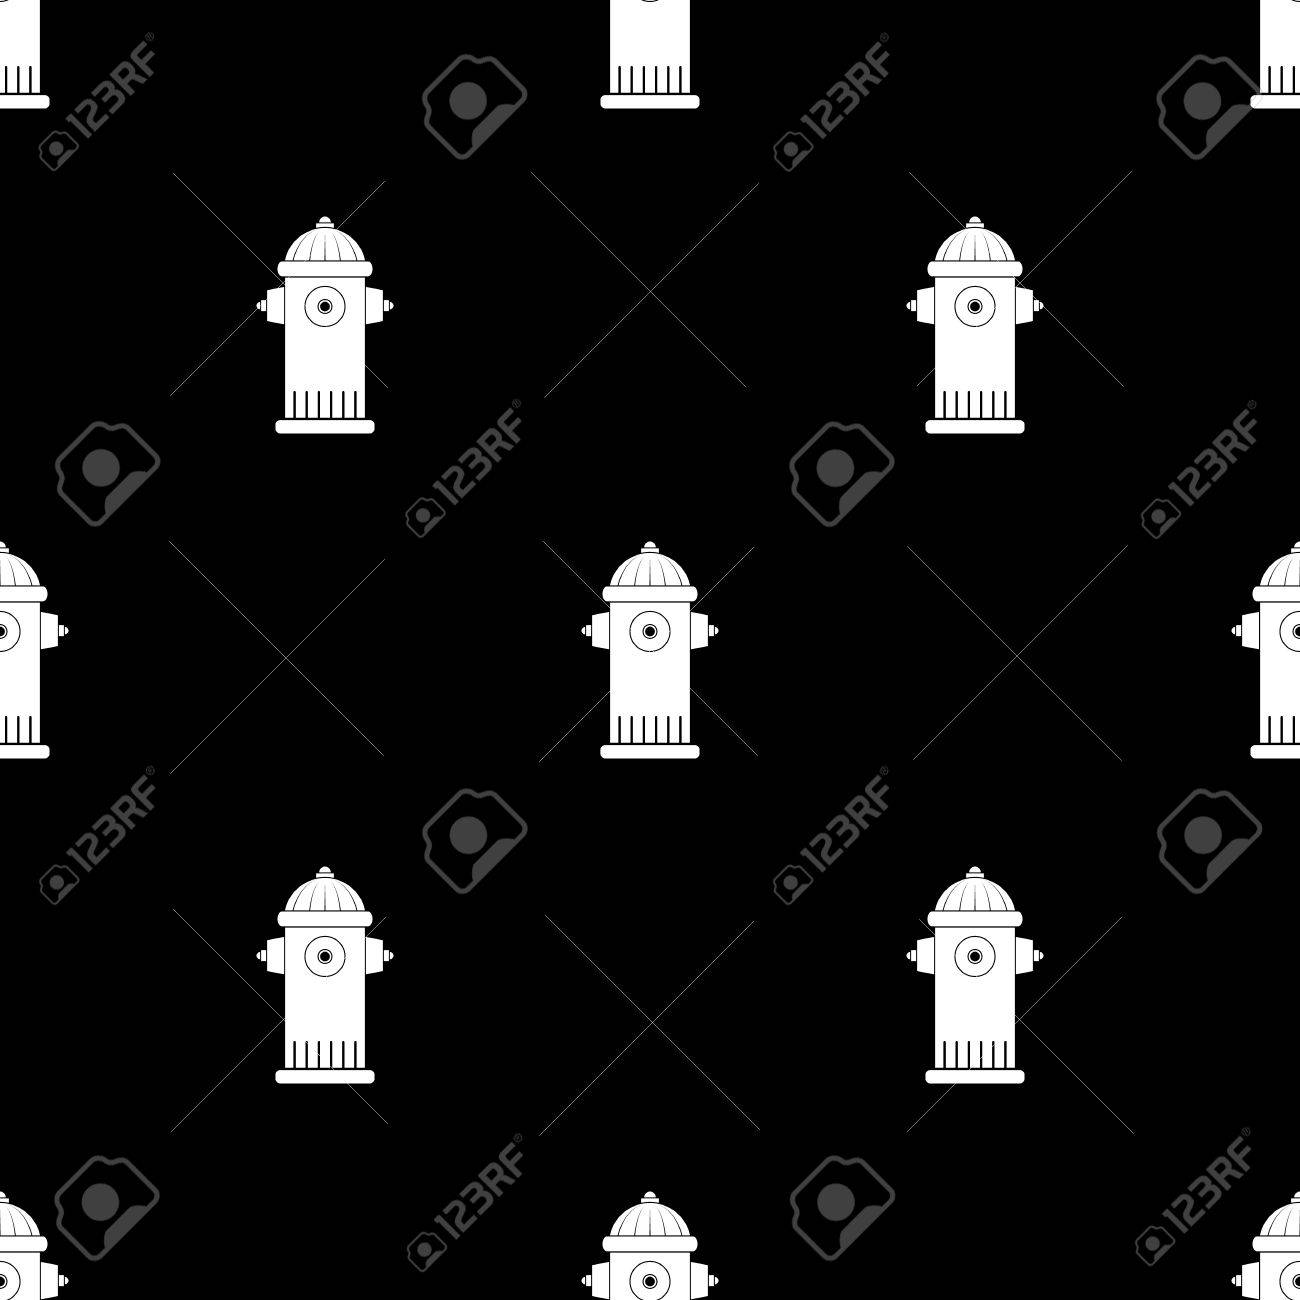 Fire Hydrant Symbol Royalty Free Cliparts Vectors And Stock